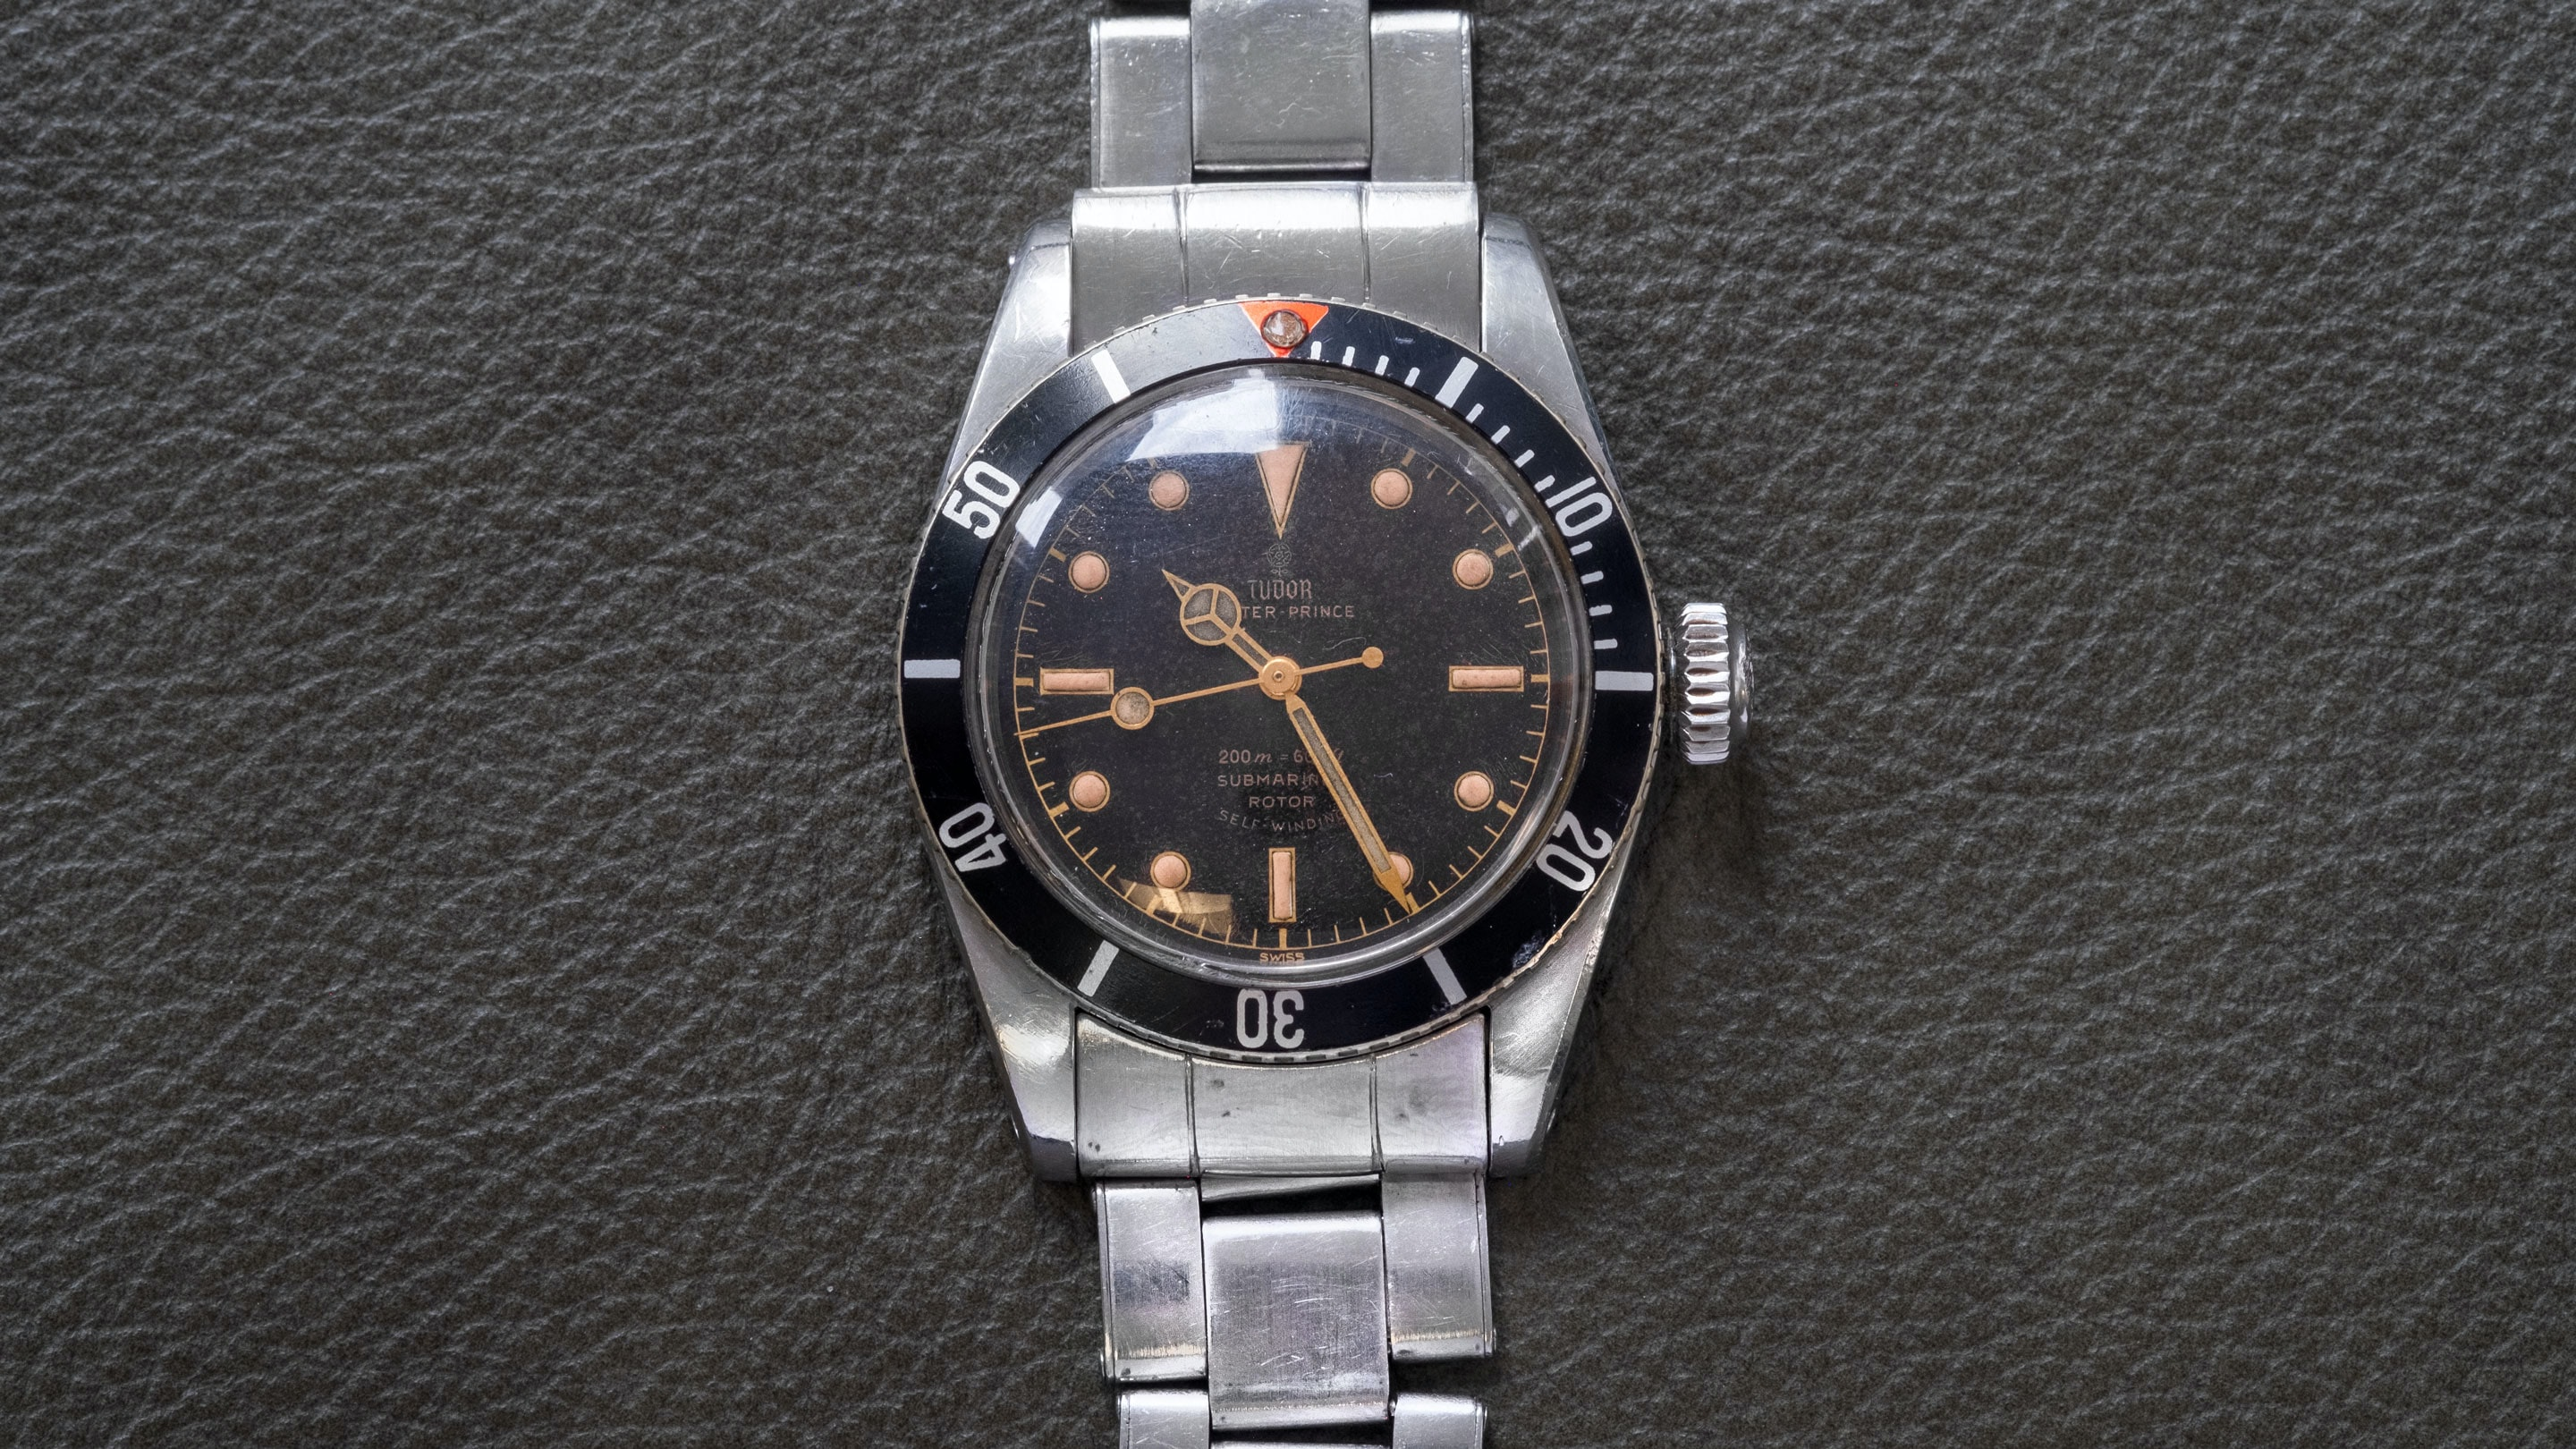 Breaking News: Tudor Big Crown Submariner Sells For $162,500, Becoming The World's Most Expensive Vintage Tudor tudor